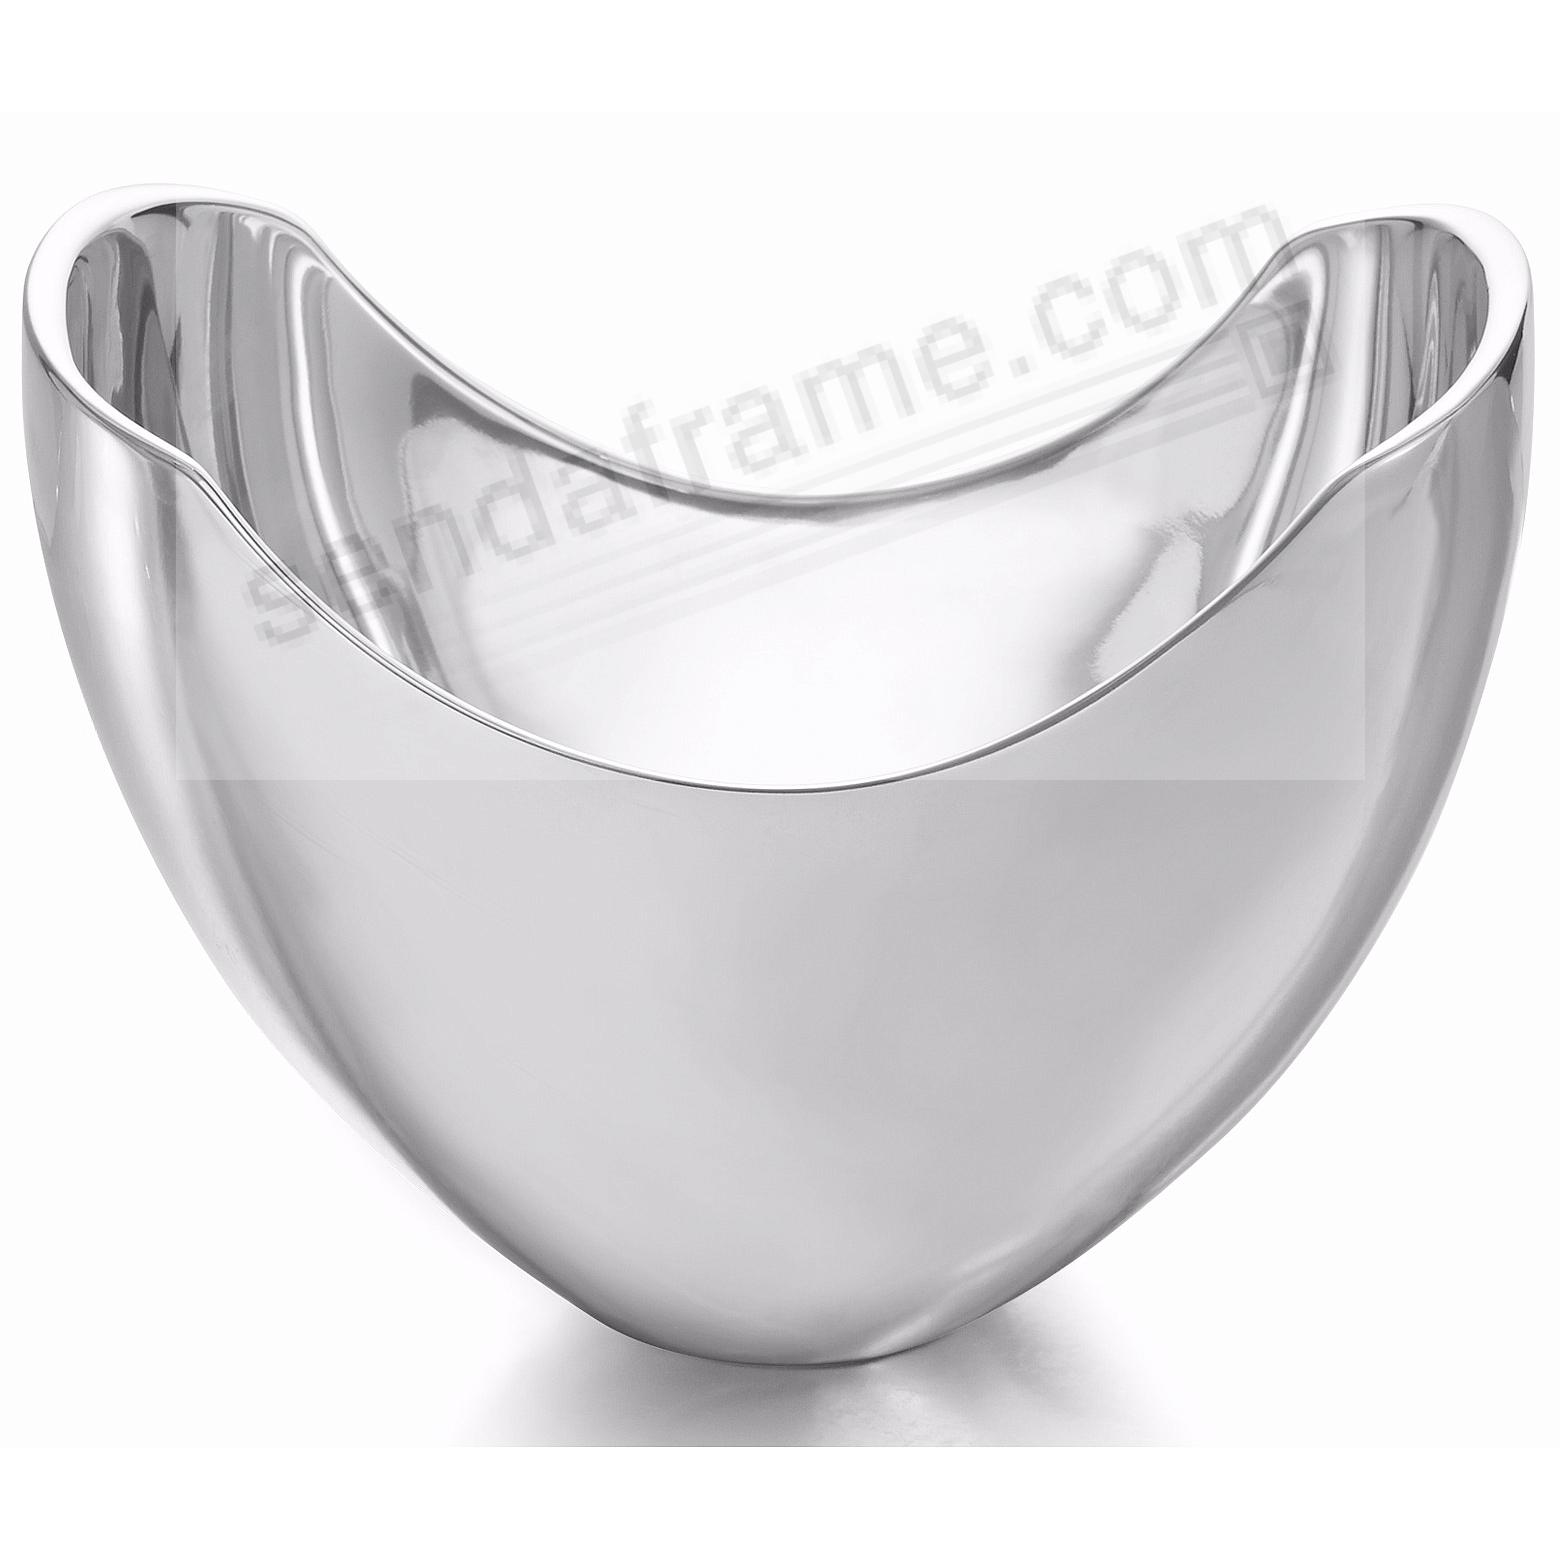 The Original ARC 9in BOWL by Nambe®